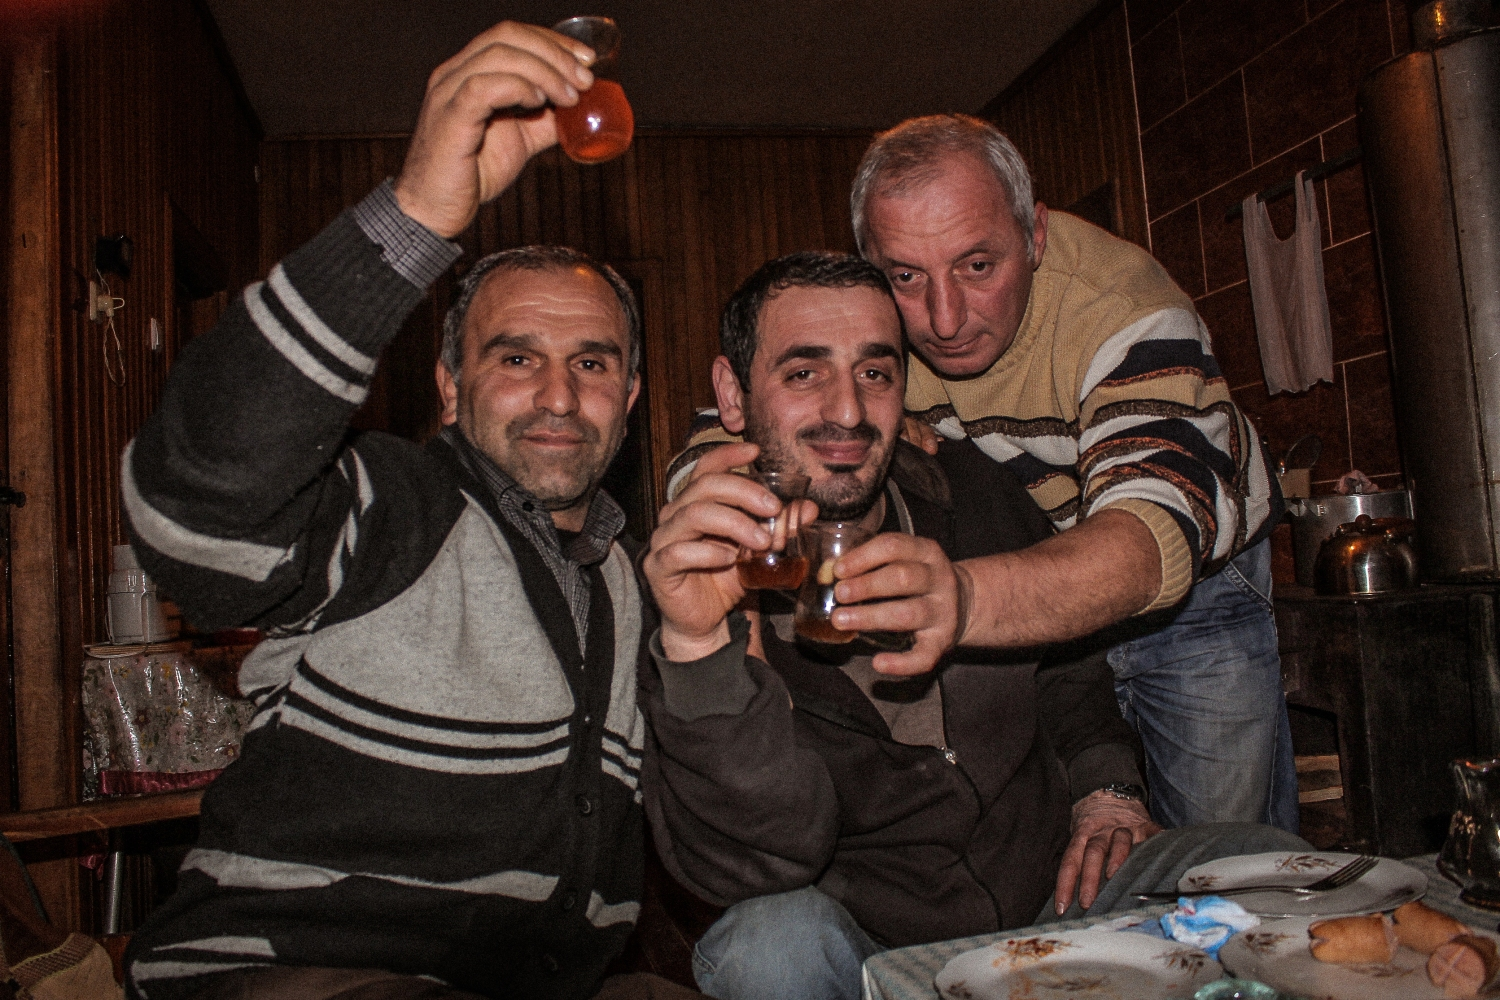 Drinks with the men of the village, Makho, Republic of Georgia